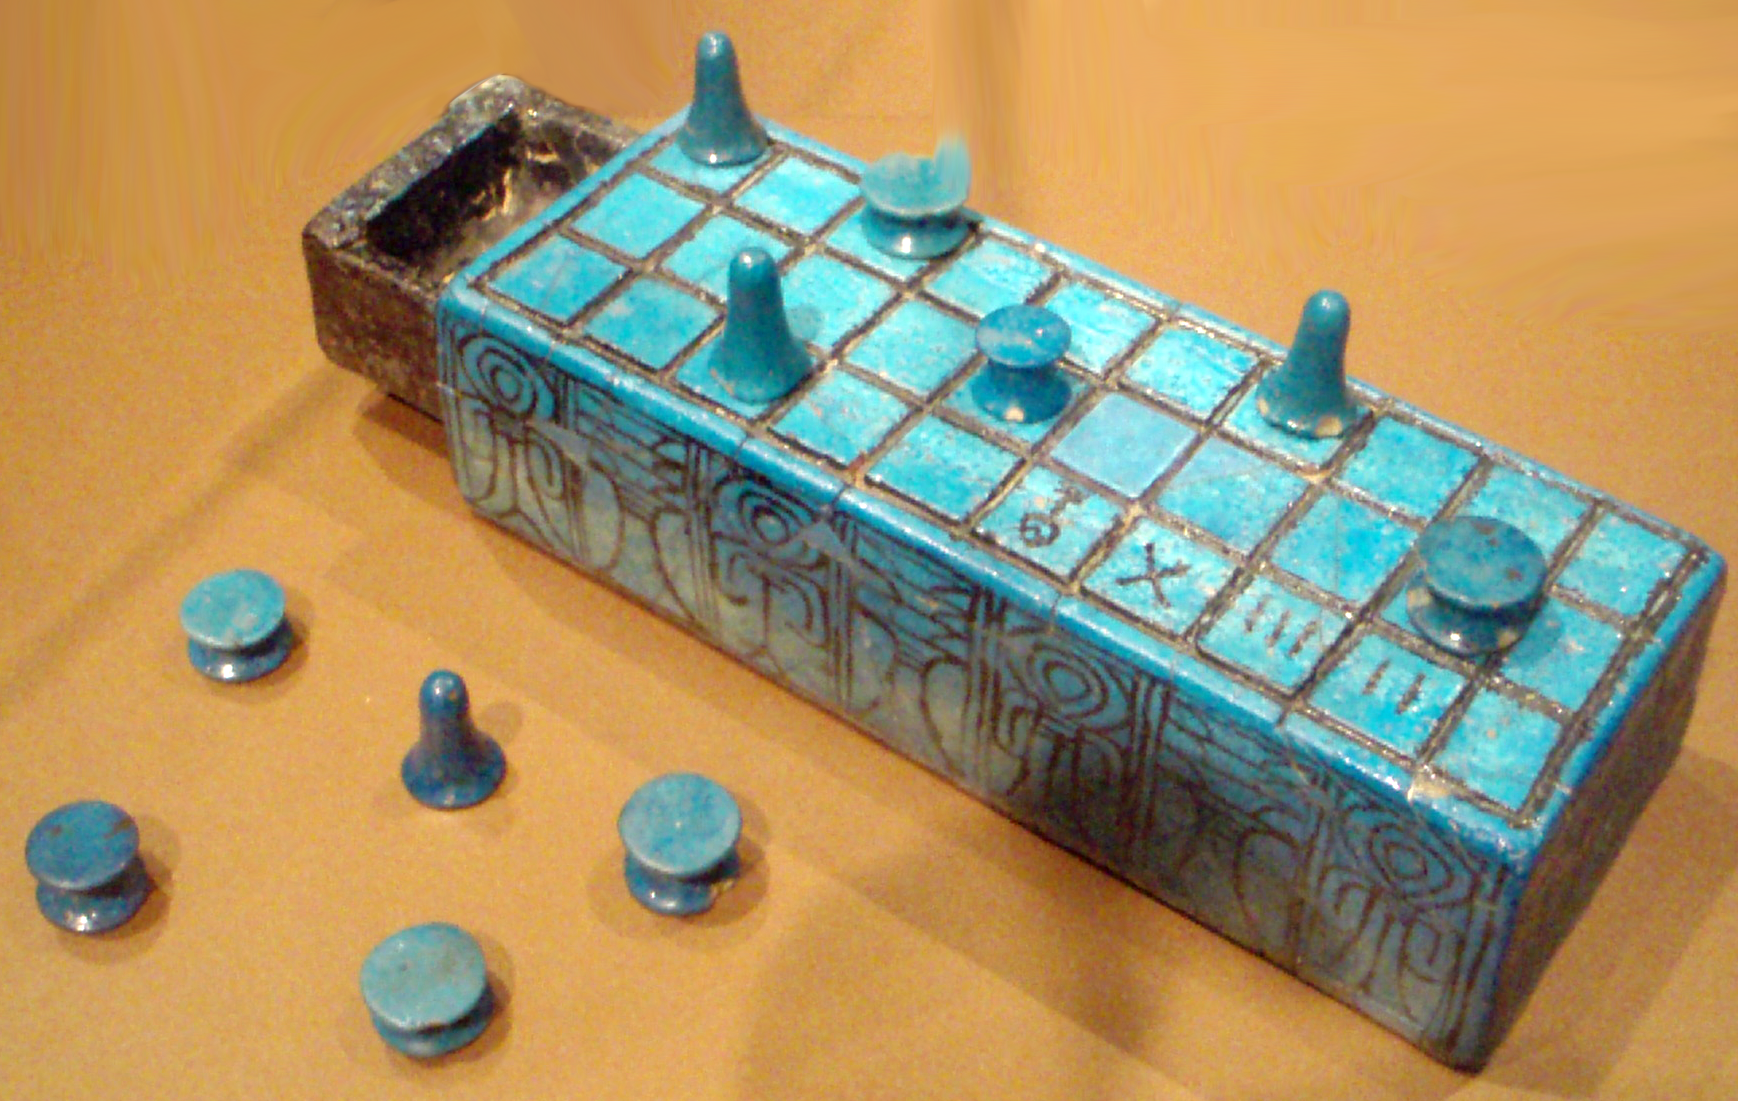 Senet board with secular markings from the Brooklyn Museum, photo by Keith Schengili-Roberts